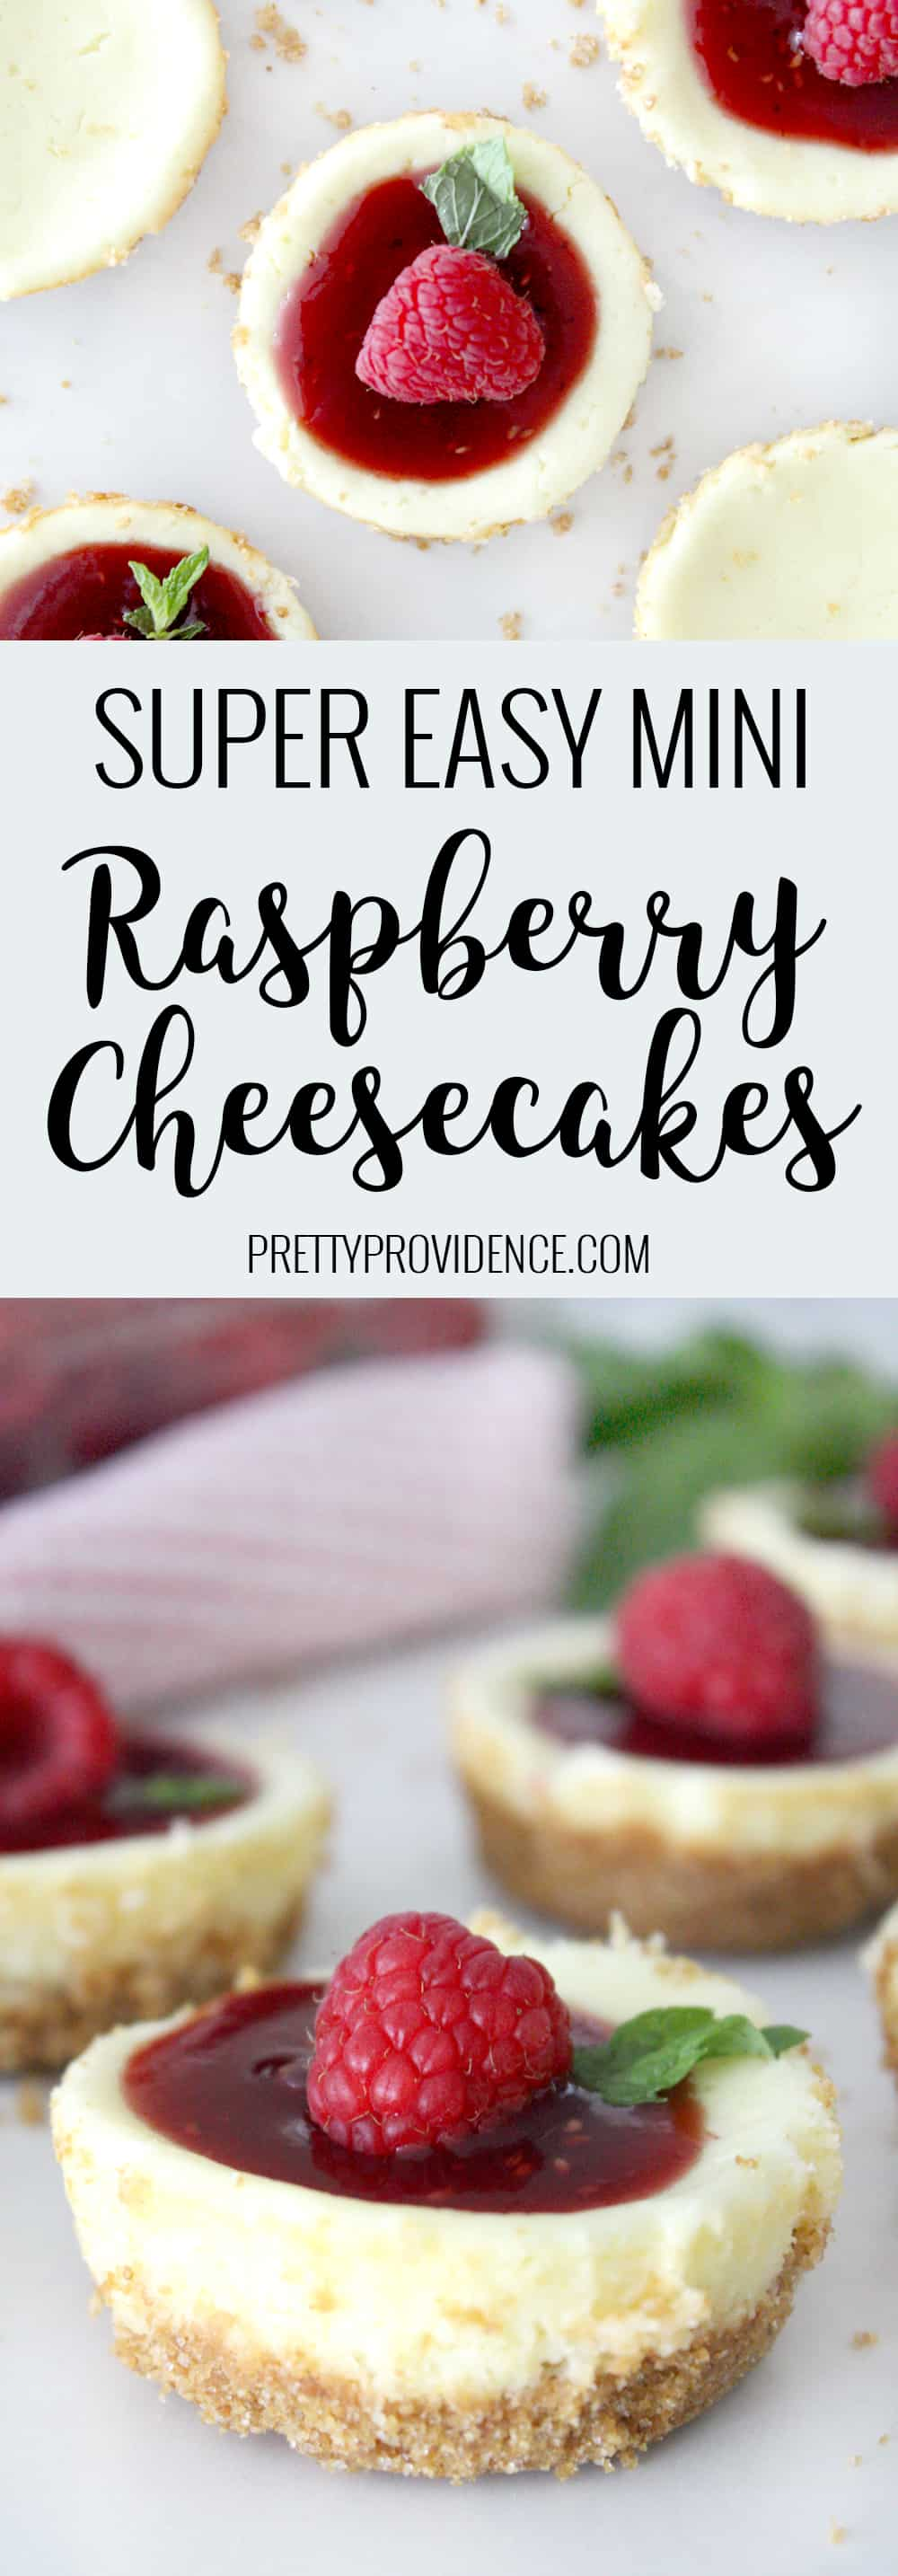 I always loved cheesecake but thought it would be hard to make- this recipe totally proves that theory wrong! So quick and easy and SO GOOD!